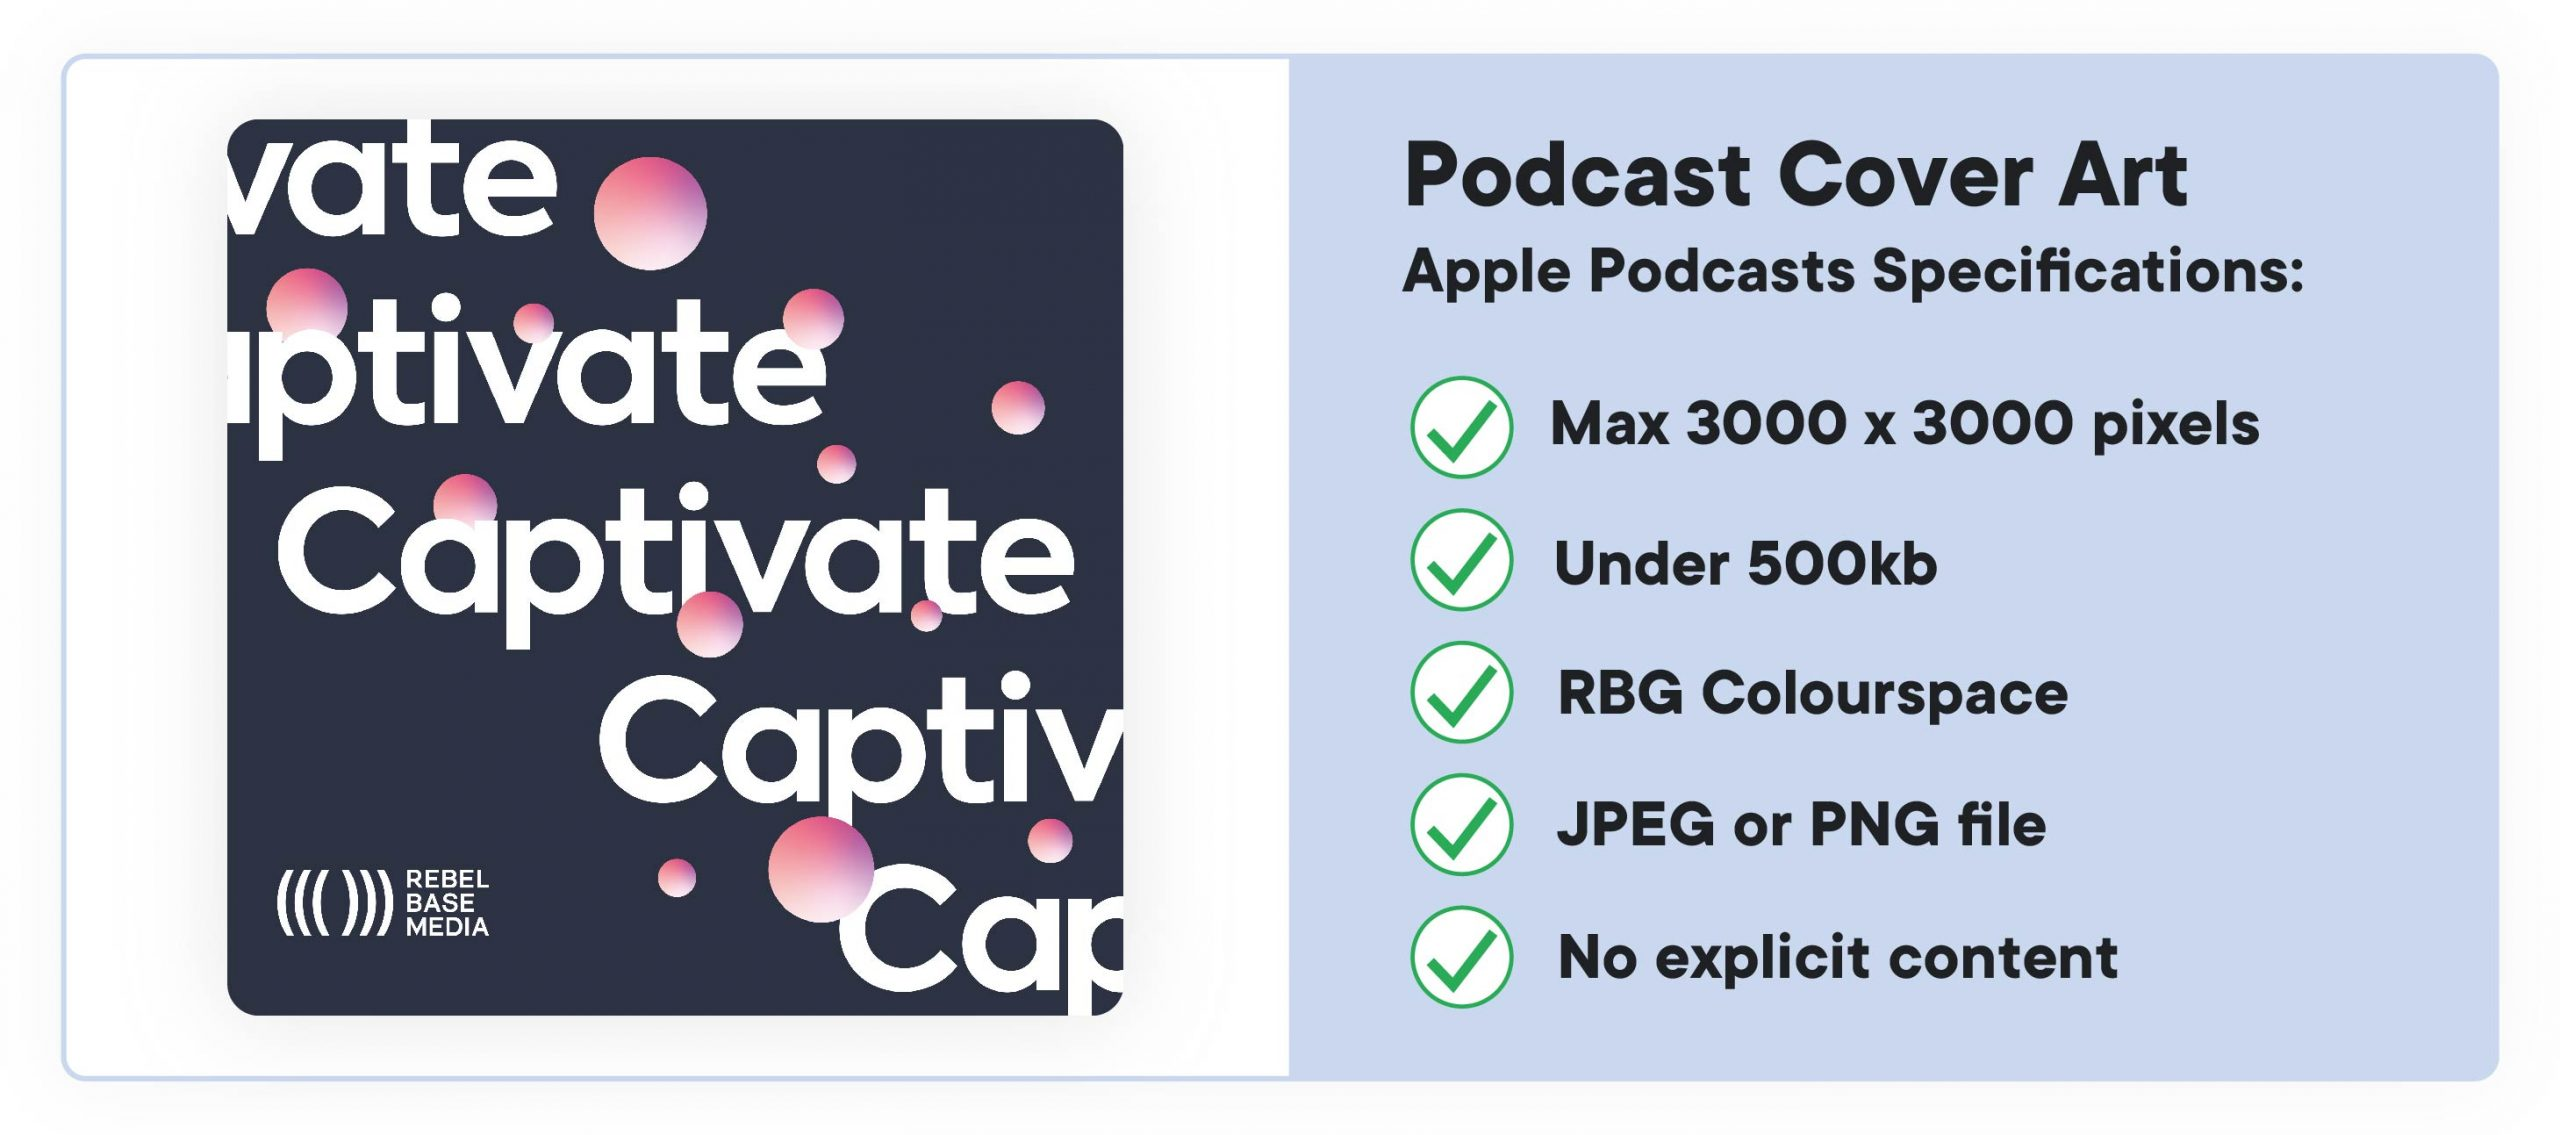 How to start a podcast: cover art specs. According to Apple, cover art must be: 3000 x 3000 pixels, RGB colourspace, jpeg OR png, under 500kb.